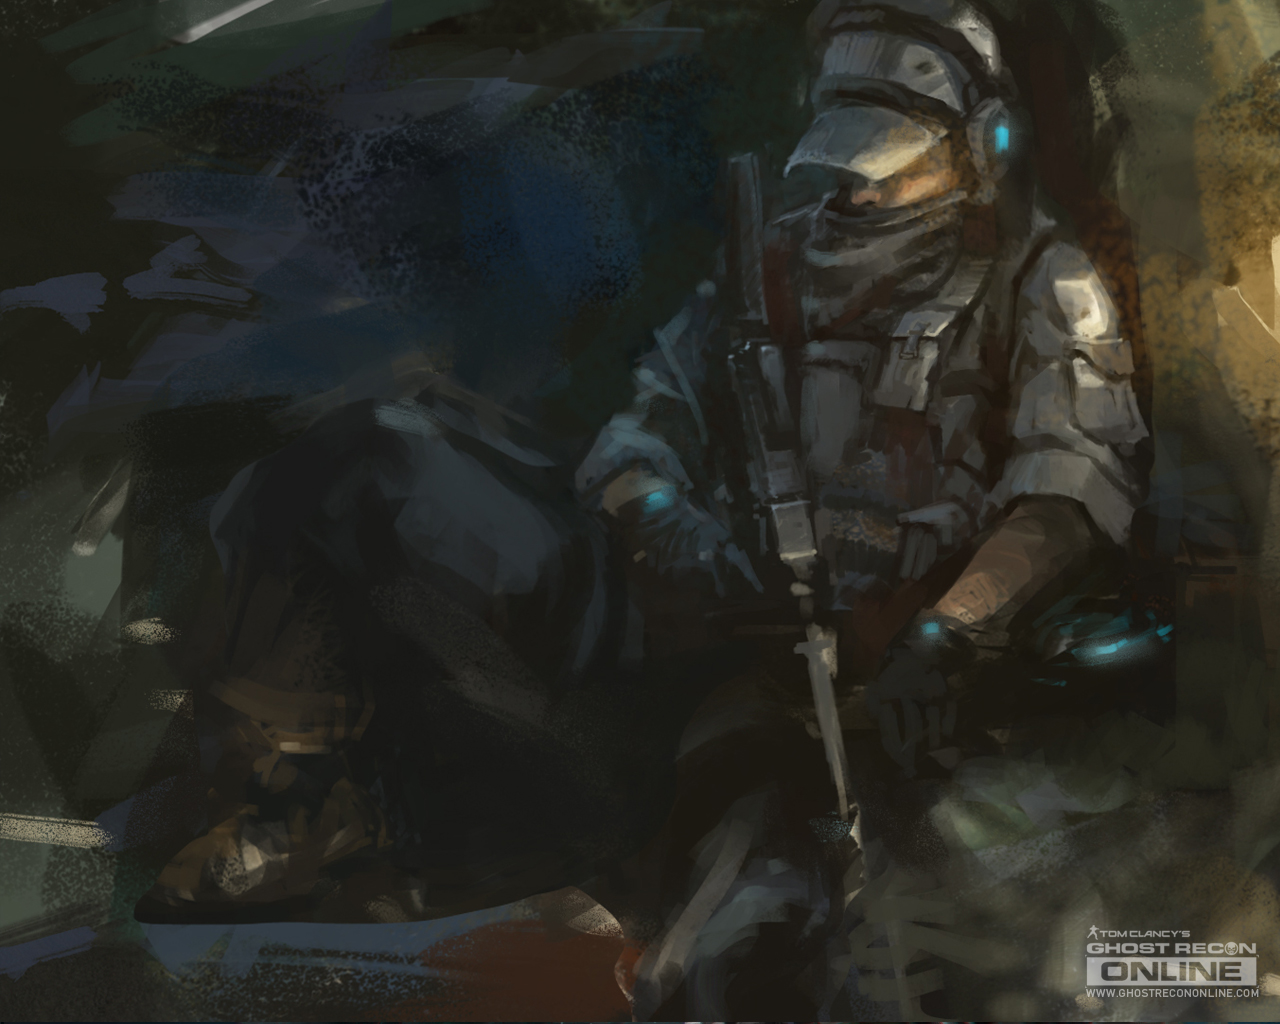 Wallpapers Media Ghost Recon Phantoms Official Website 1280x1024